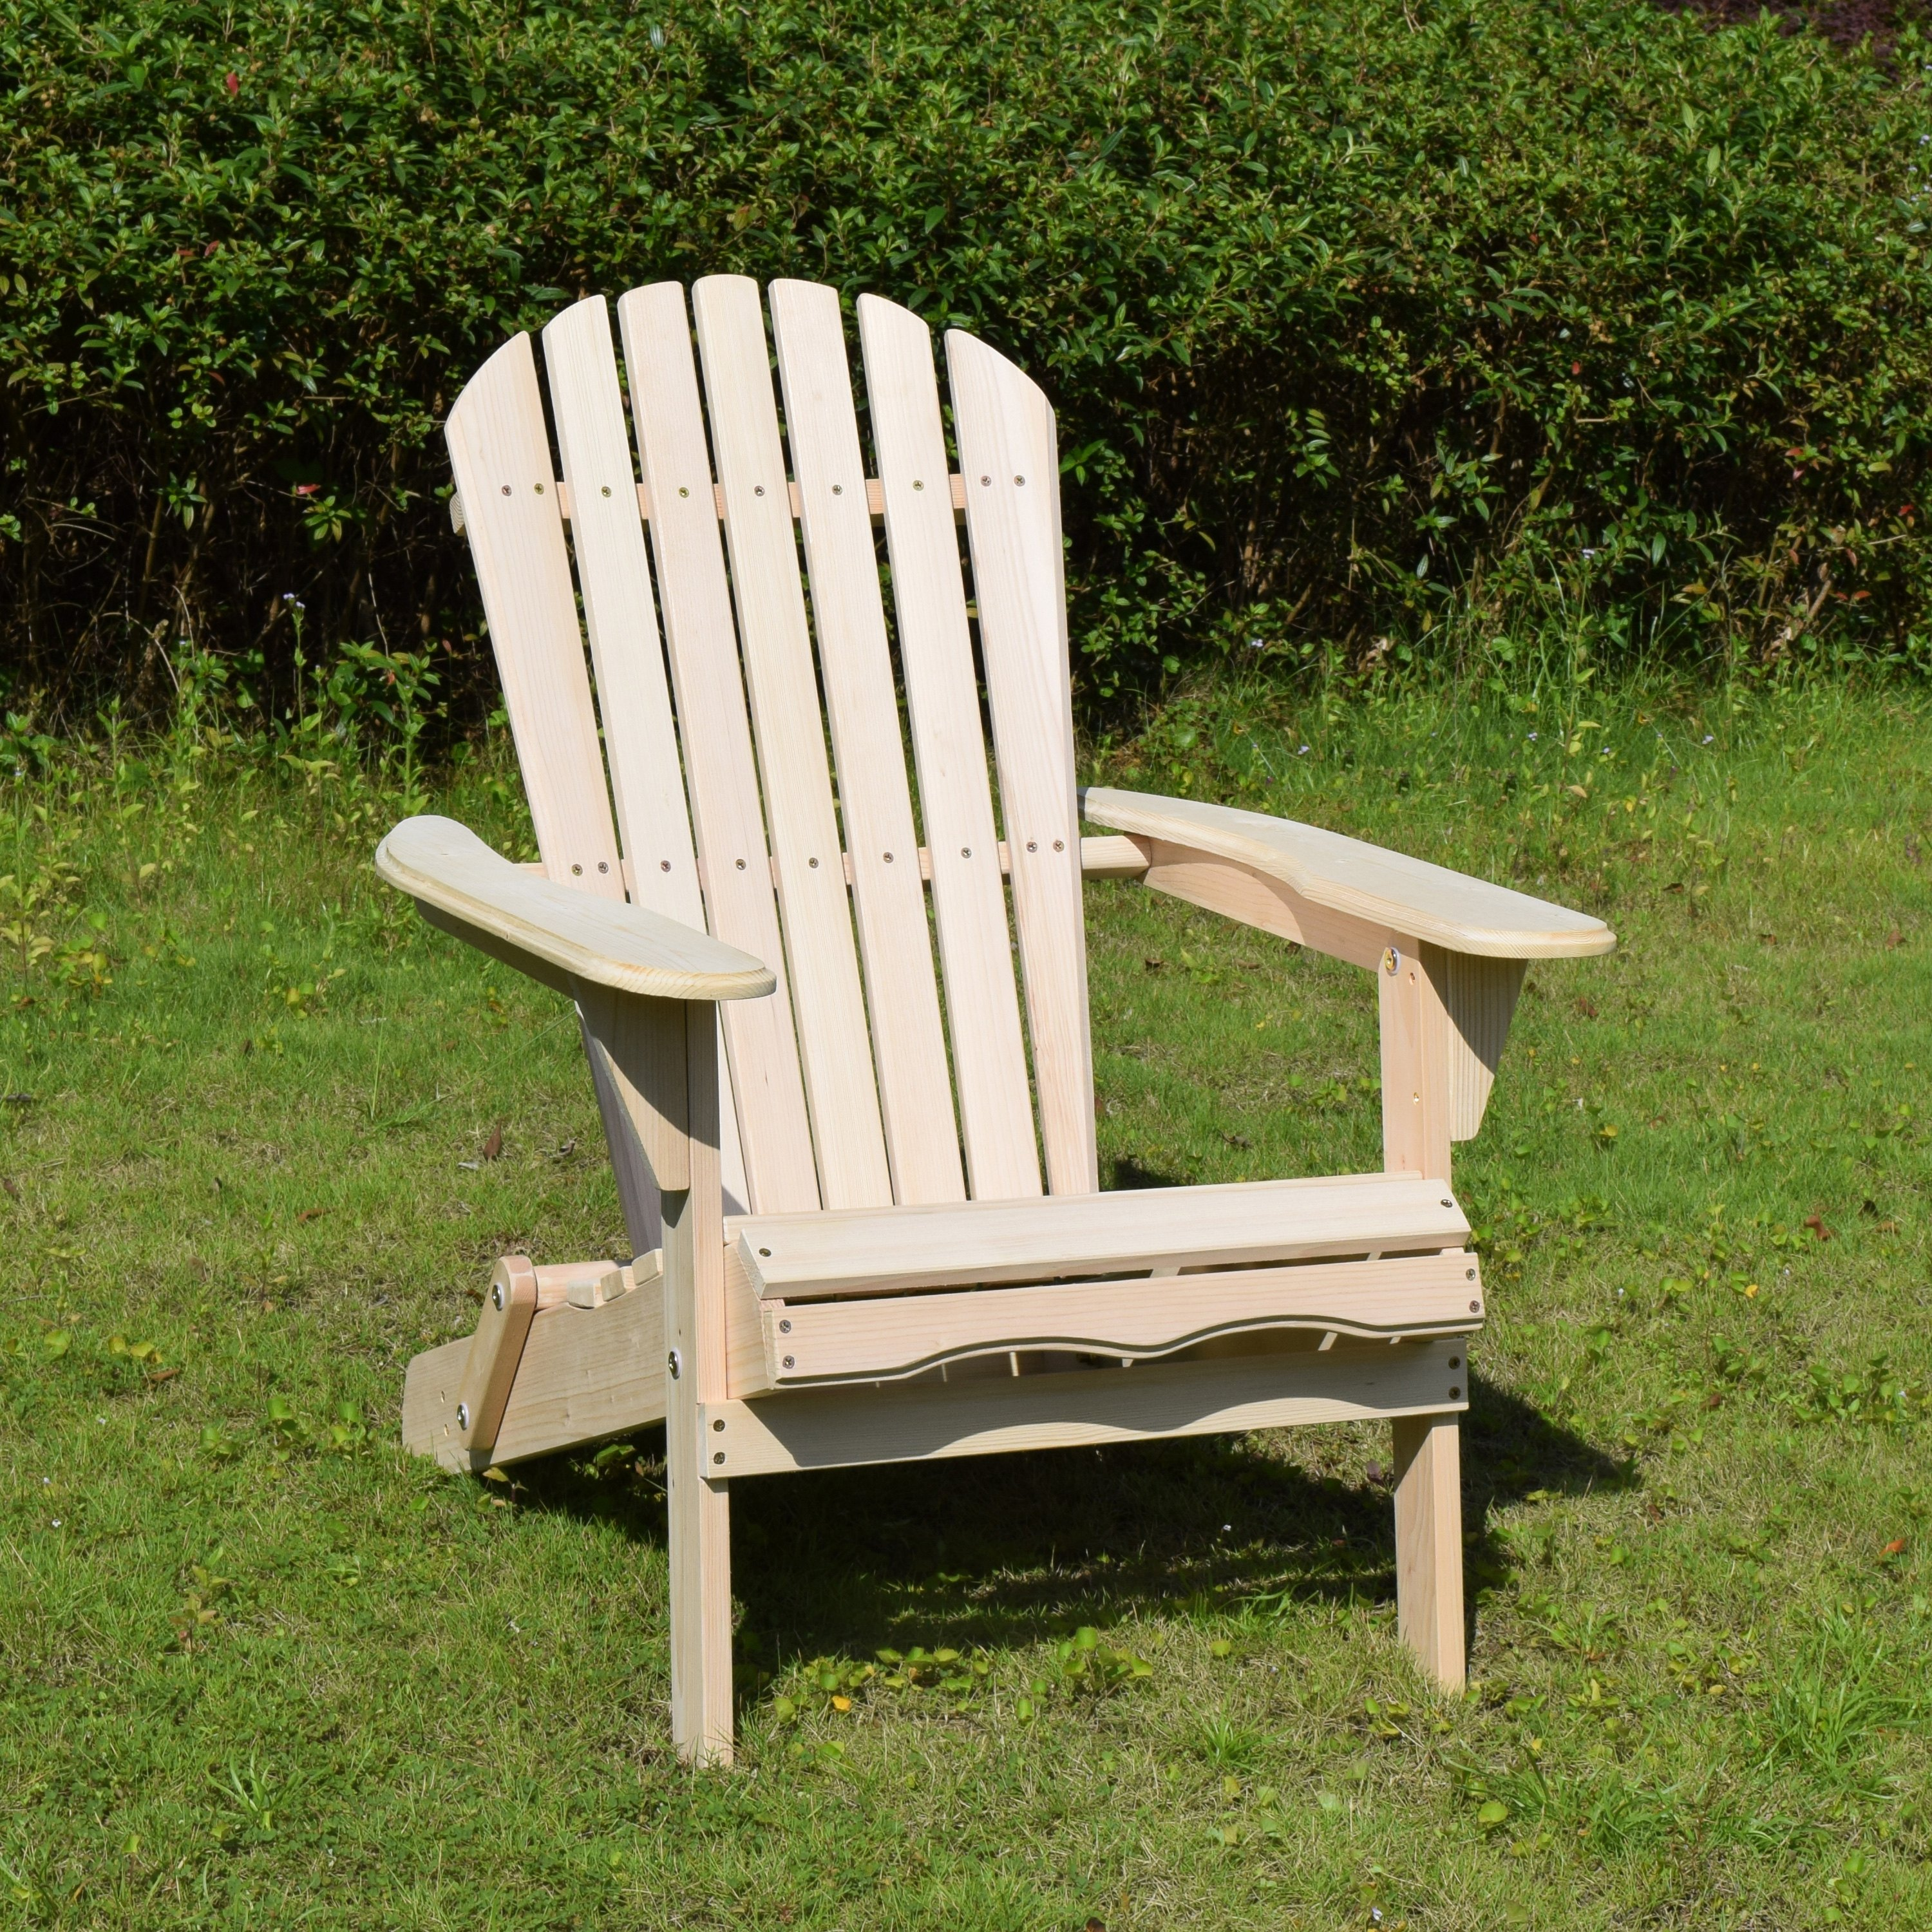 adirondack chair kit grey patterned accent merry mpg ace010kit folding recreationid com kitmerry